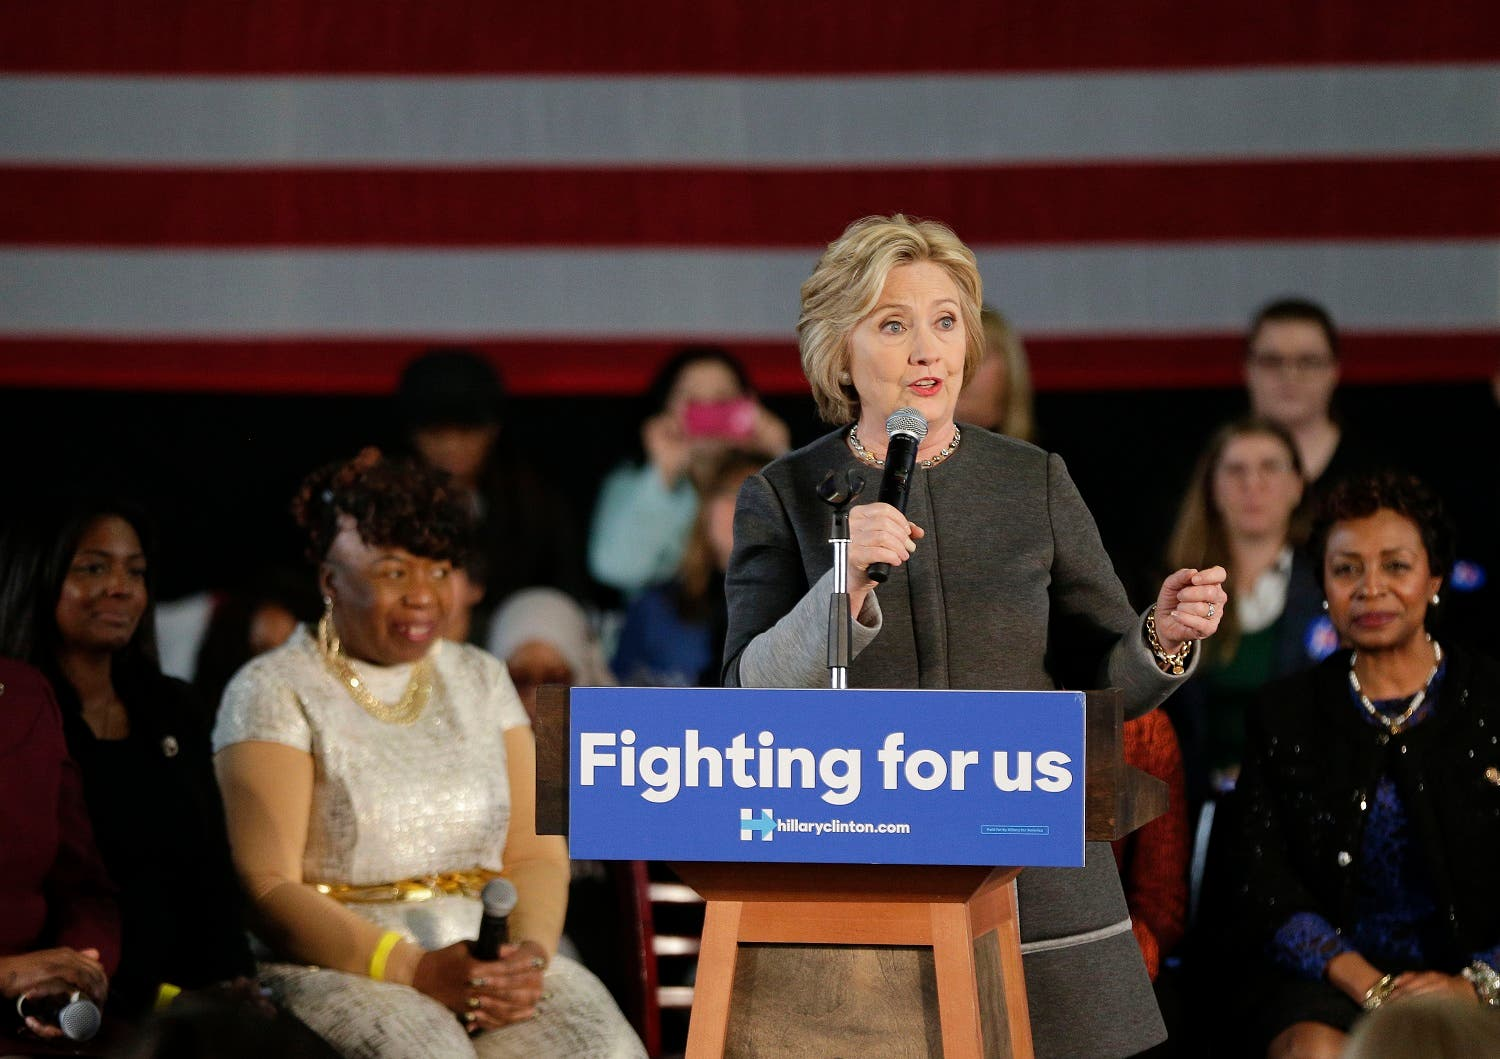 In this Tuesday, April 5, 2016 file photo, Democratic presidential candidate Hillary Clinton speaks during a campaign stop, in New York. The presidential primary is descending on New York, with voting on April 19 as the first time the state has a played a meaningful role in the nominating process in decades. New York is a coveted prize, offering the most delegates of any contest left on the primary calendar until California votes on June 7. (AP)